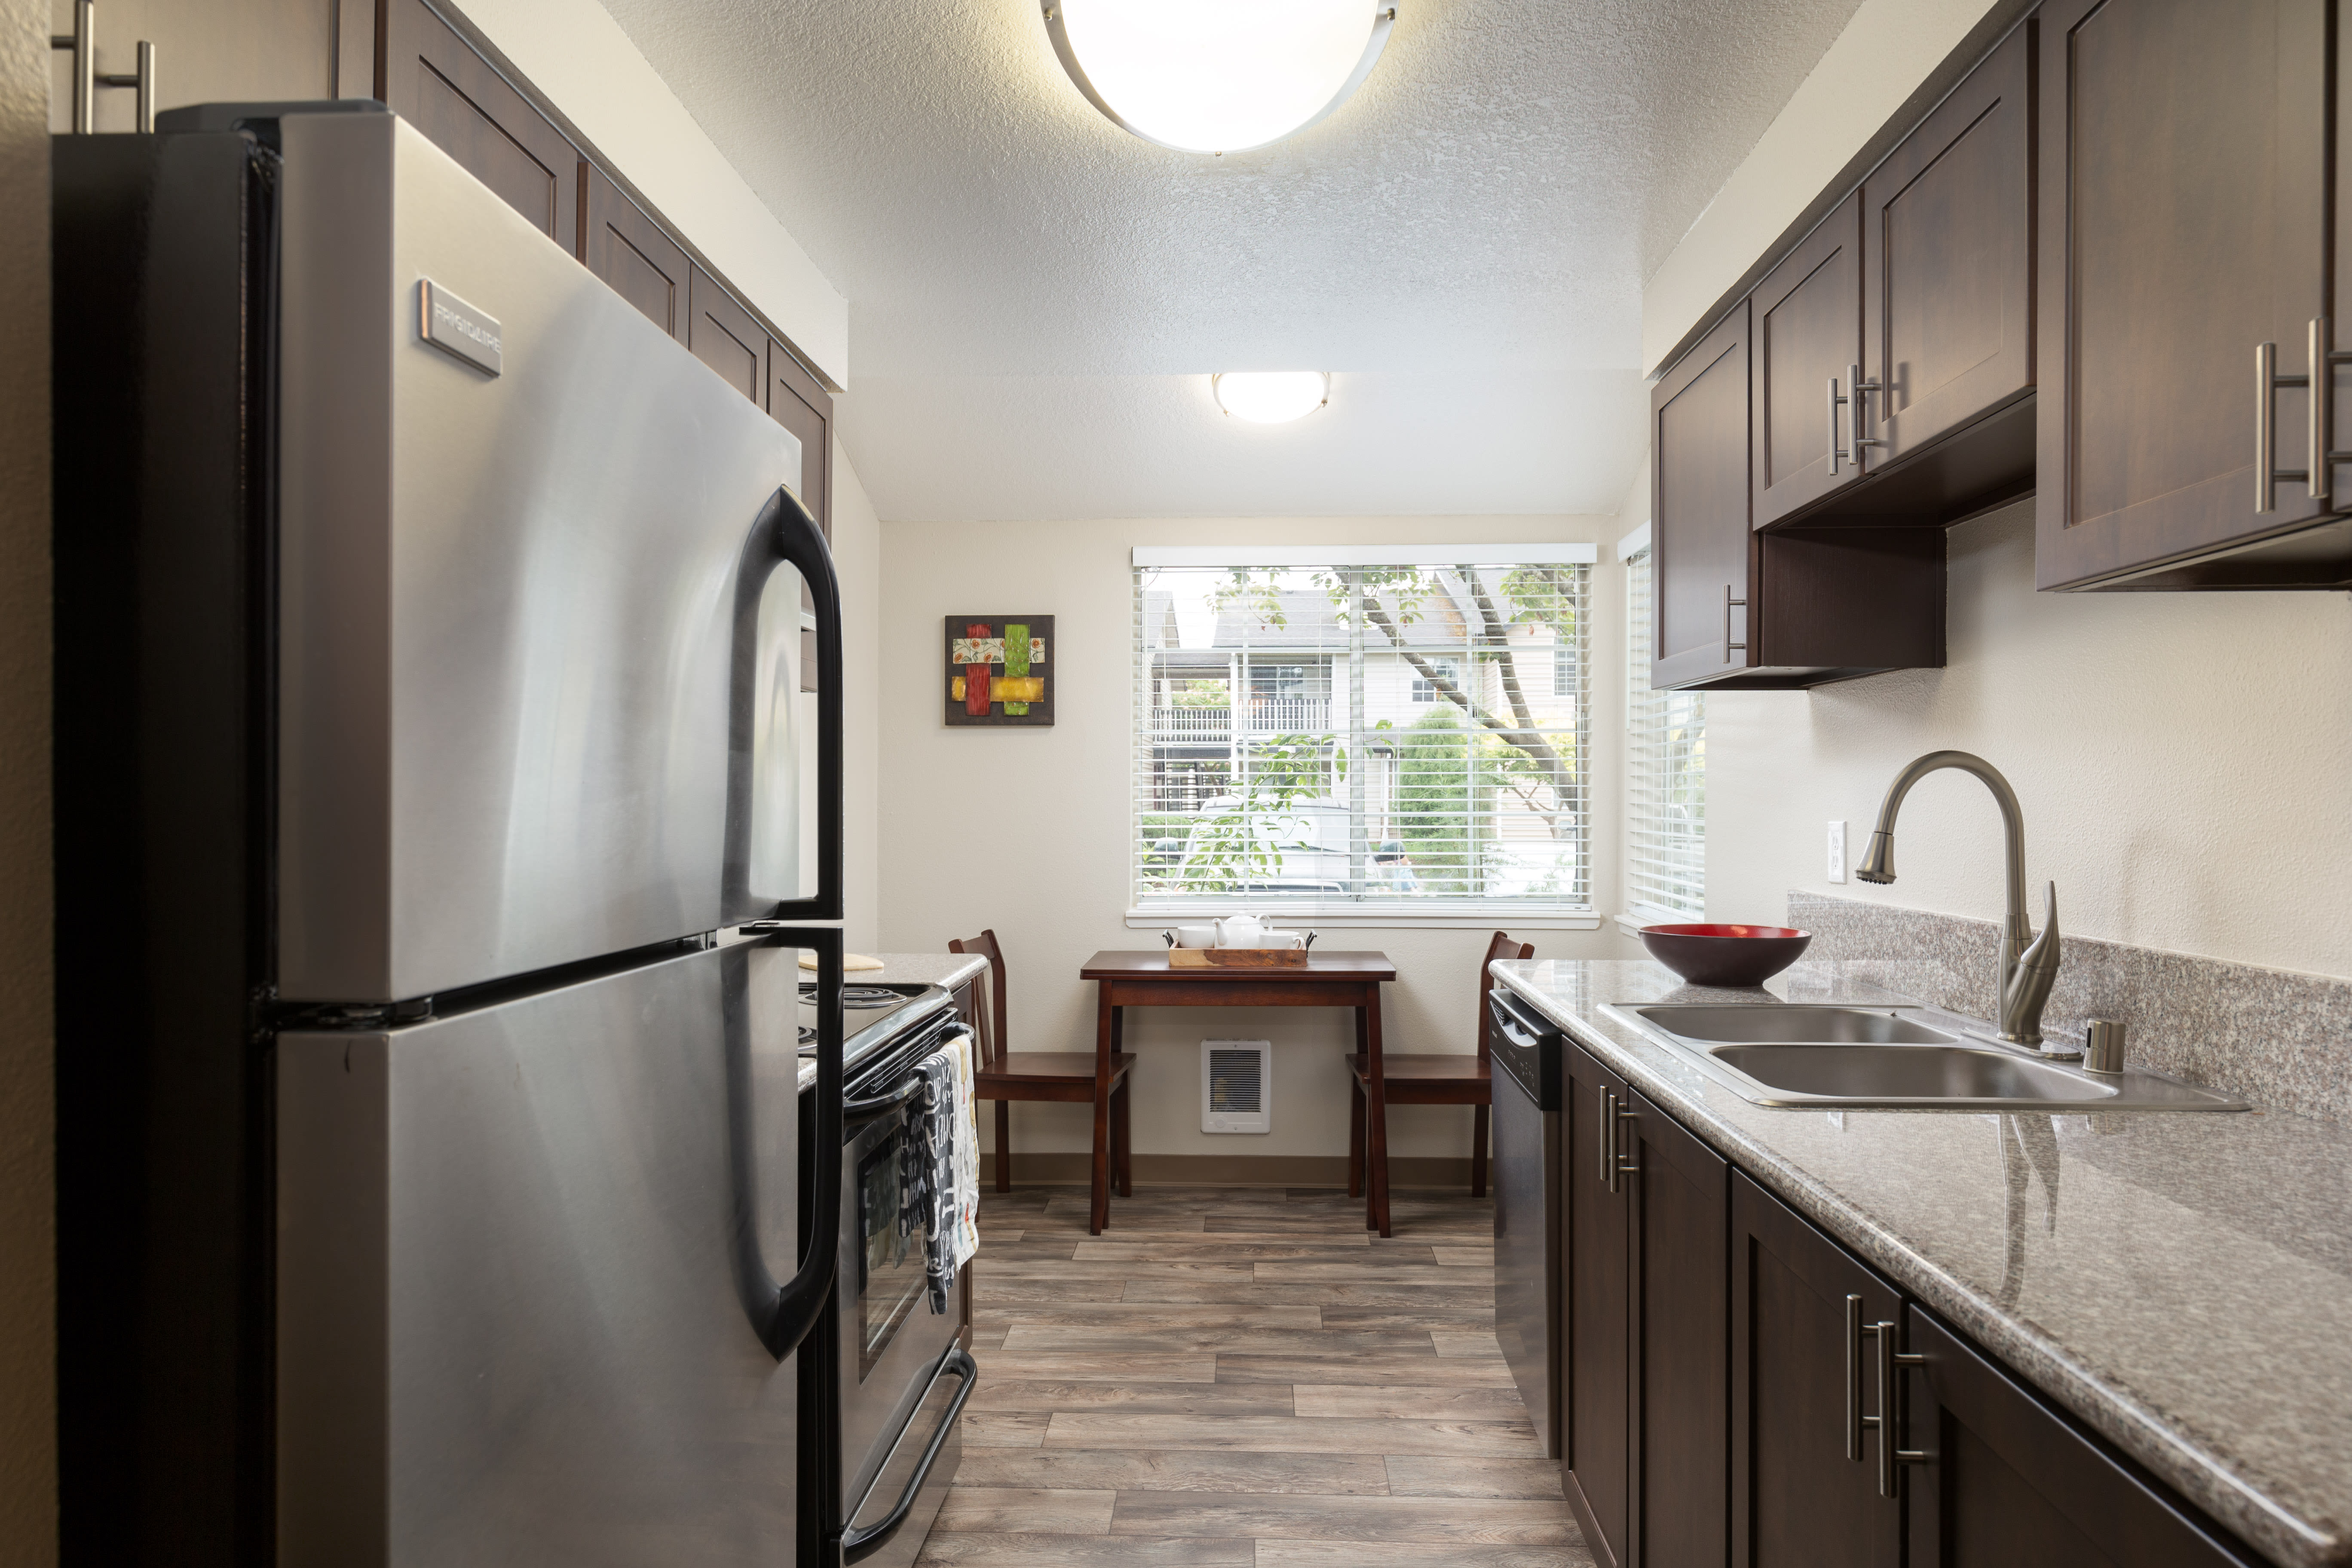 Affordable 1 2 3 bedroom apartments in vancouver wa - 2 bedroom apartments in vancouver wa ...